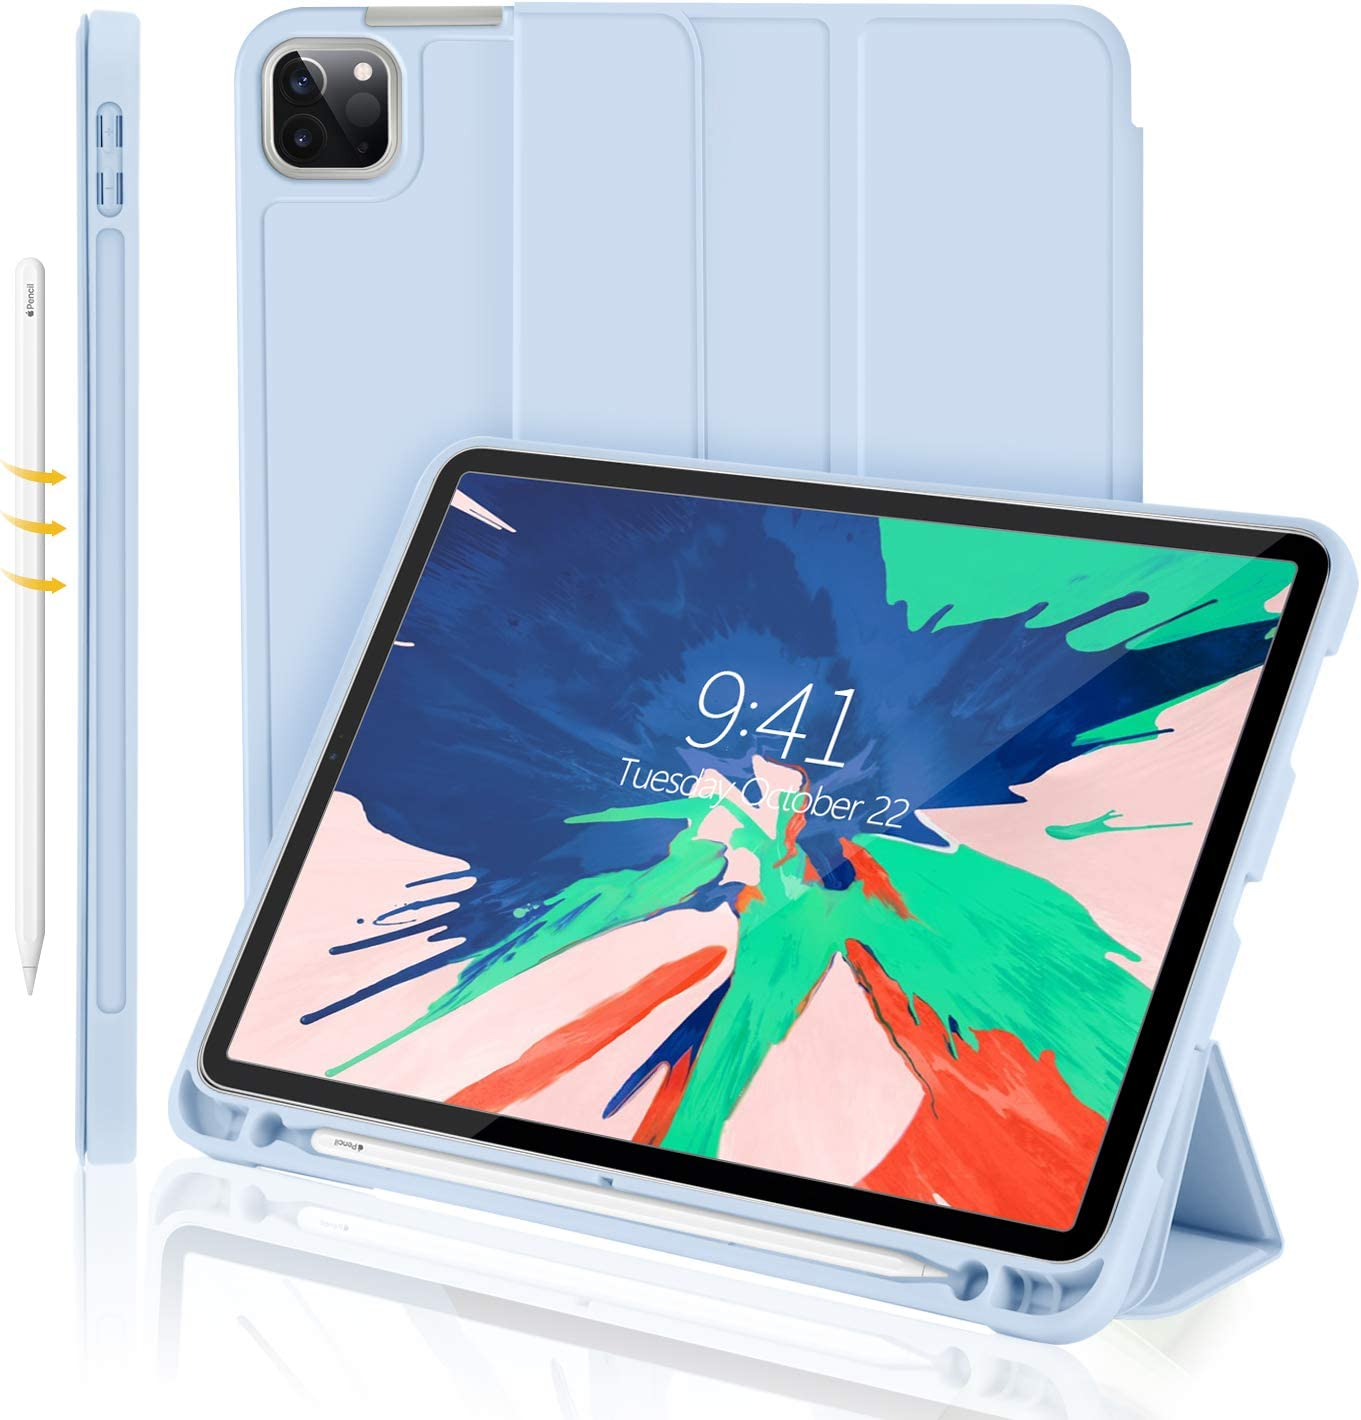 iMieet New iPad Pro 11 Case with Pencil Support Quantity limited Holder 2020 supreme iPa